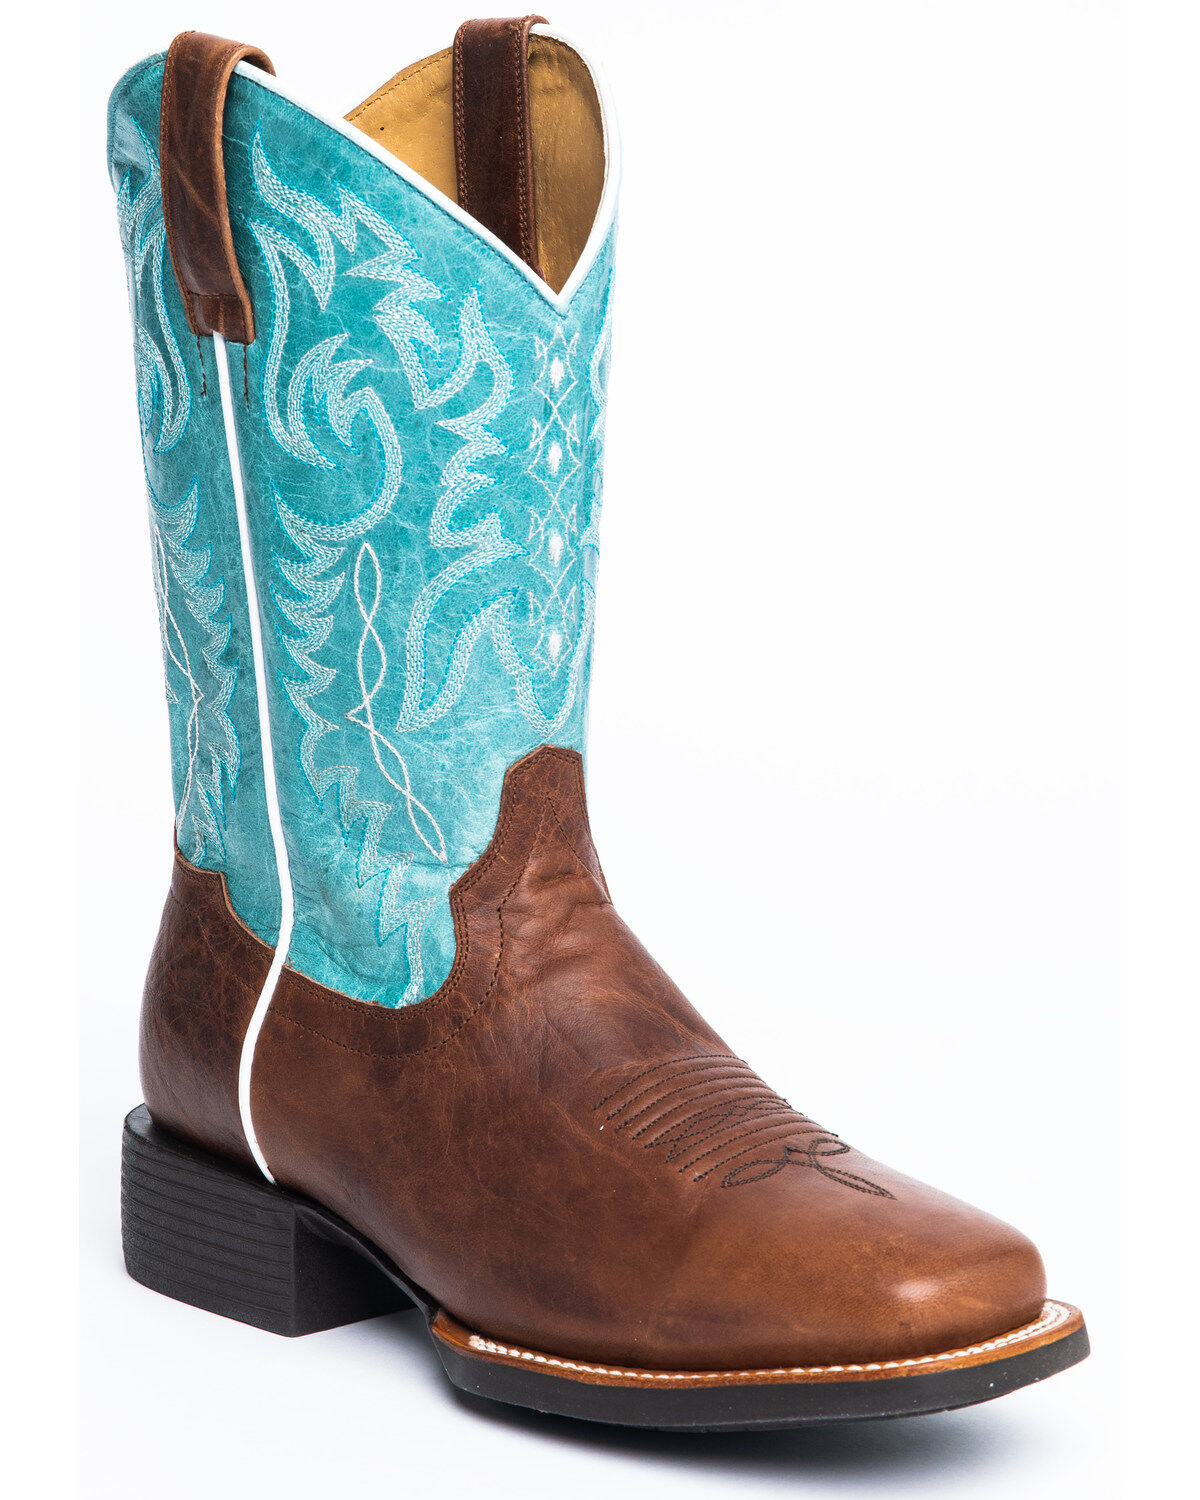 Women's Wide Square Toe Boots - Boot Barn